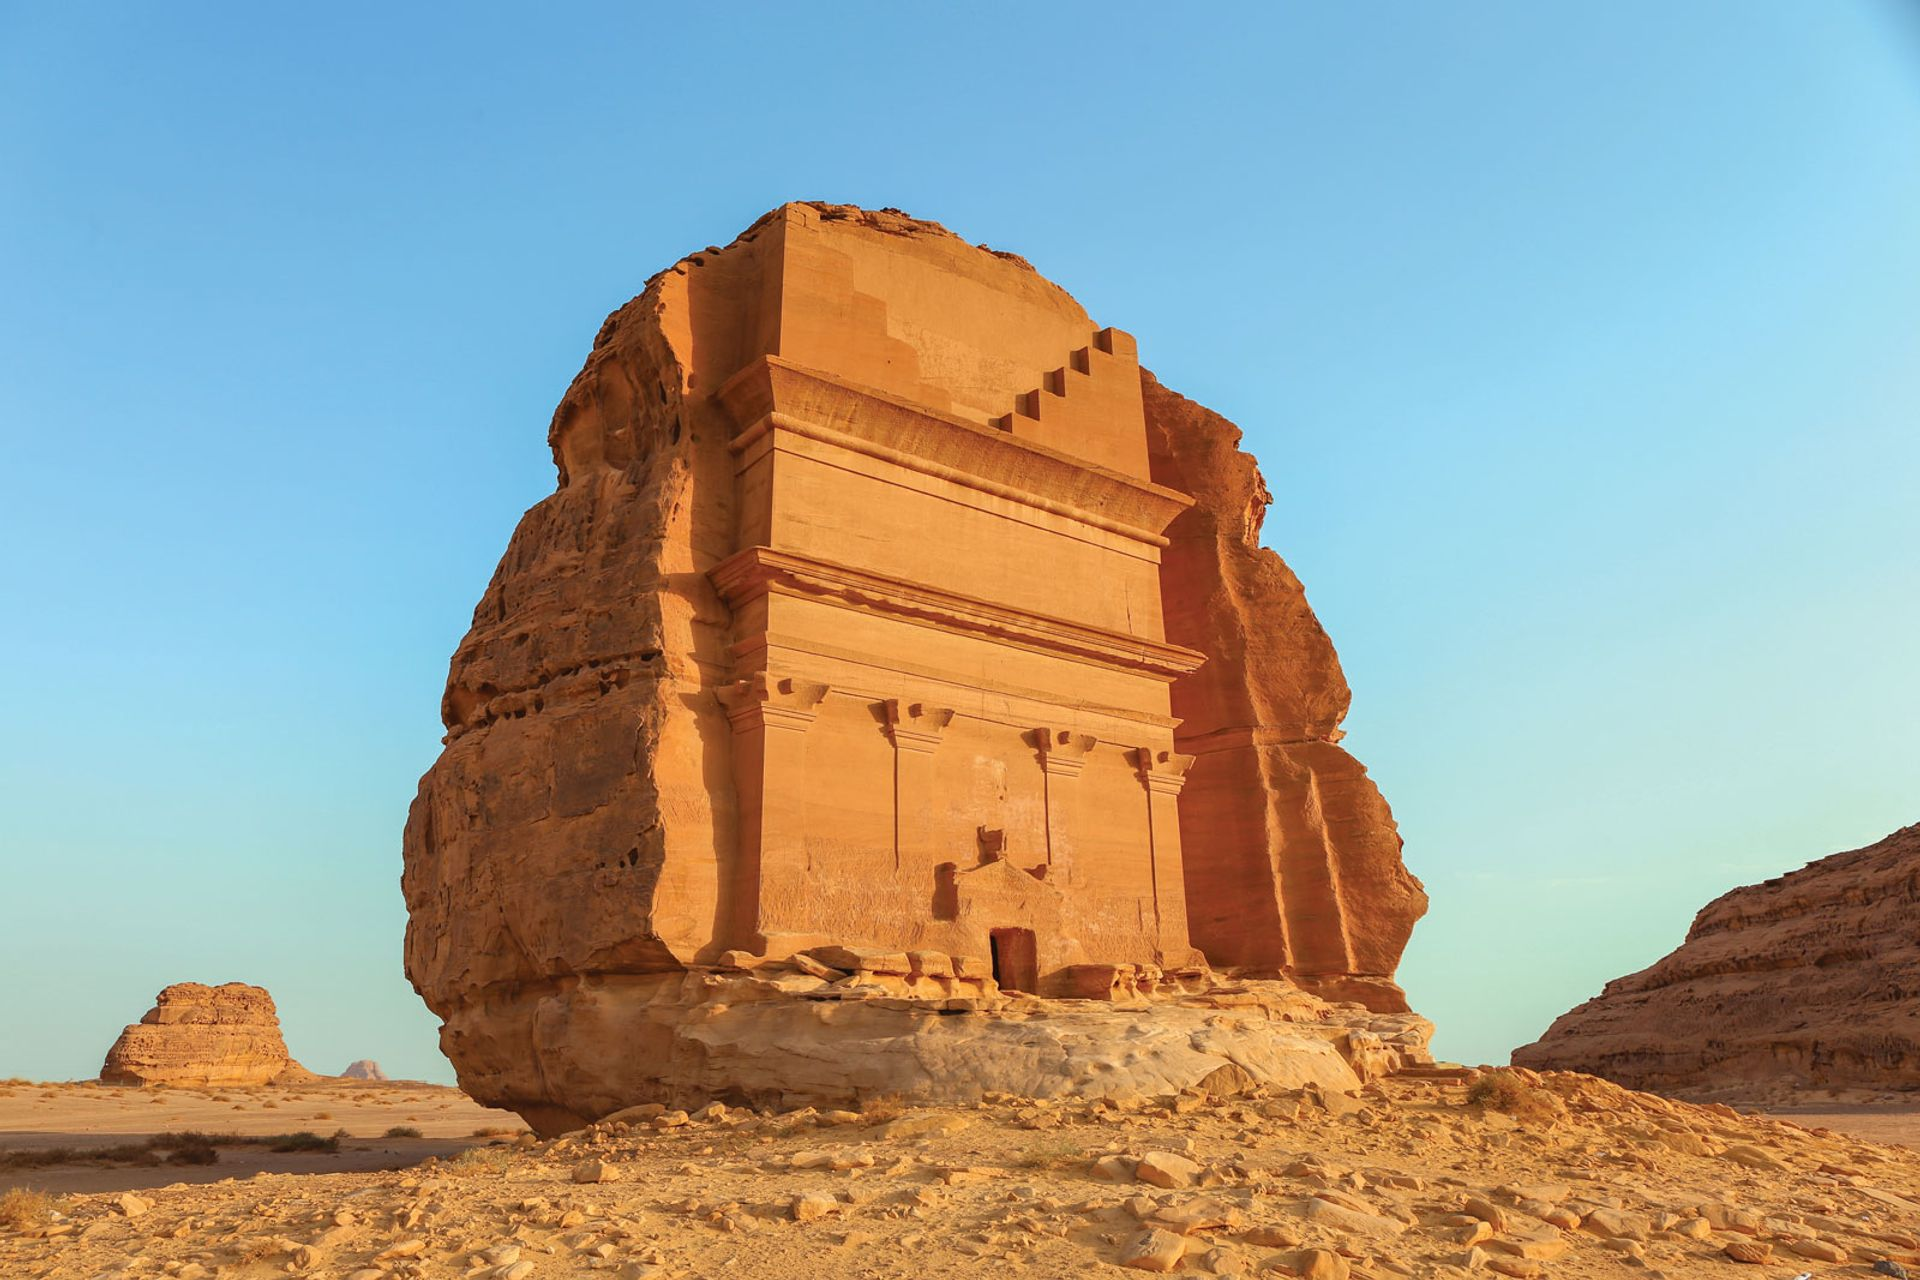 The Mada'in Salih archaeological site in Al-Ula could open to tourists under the deal with France Shutterstock/cpaulfell